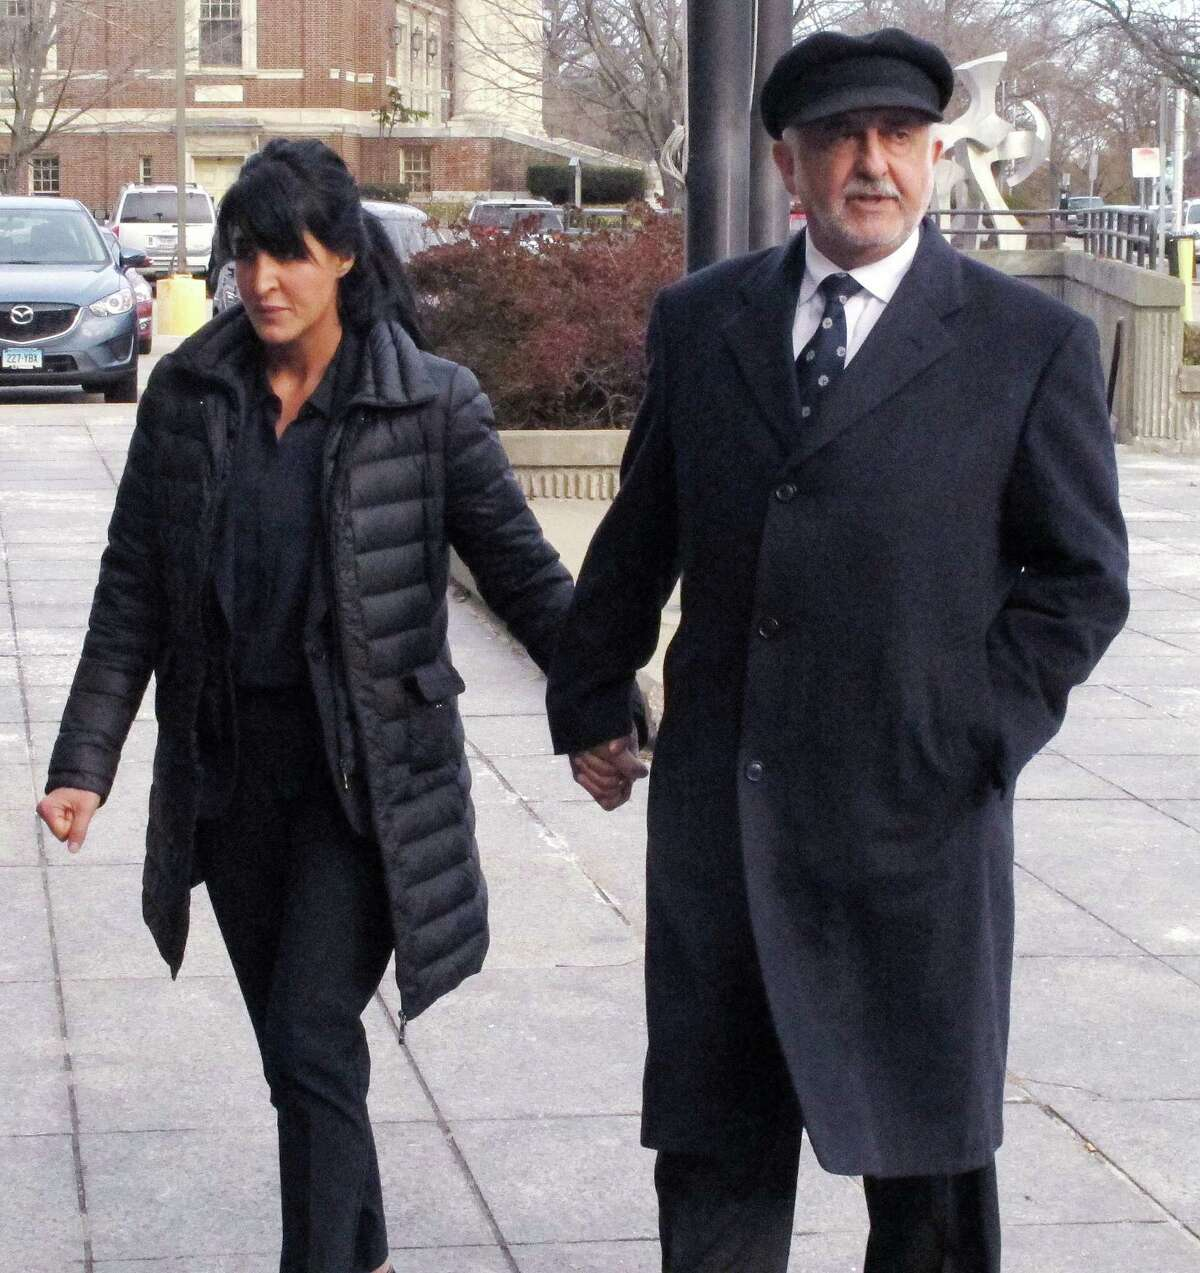 Tiffany Stevens, left, walks with her father, Edward Khalily, to Superior Court on the first day of her trial in Hartford, Conn., Tuesday, Dec. 2, 2014. (AP Photo/Dave Collins)